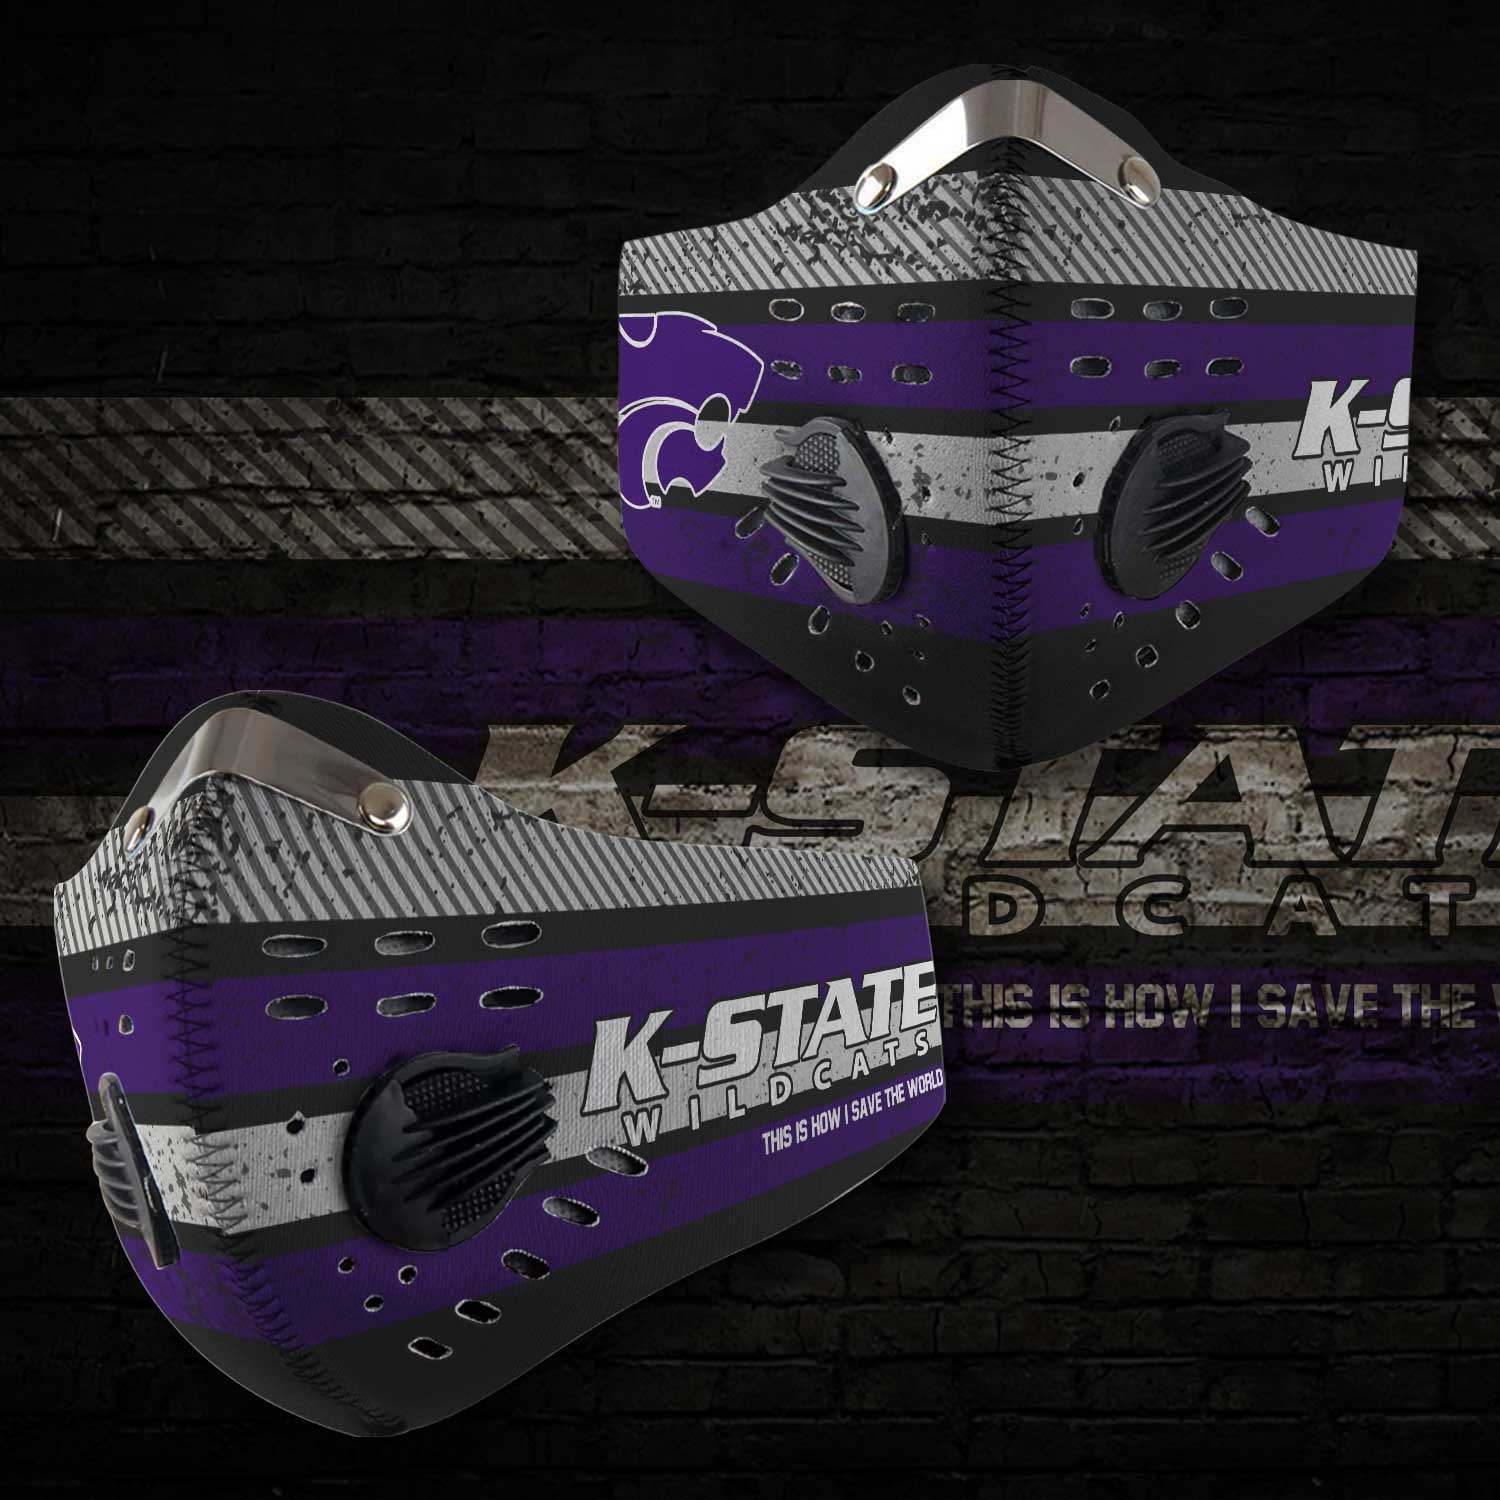 Kansas state wildcats football this is how i save the world face mask 1